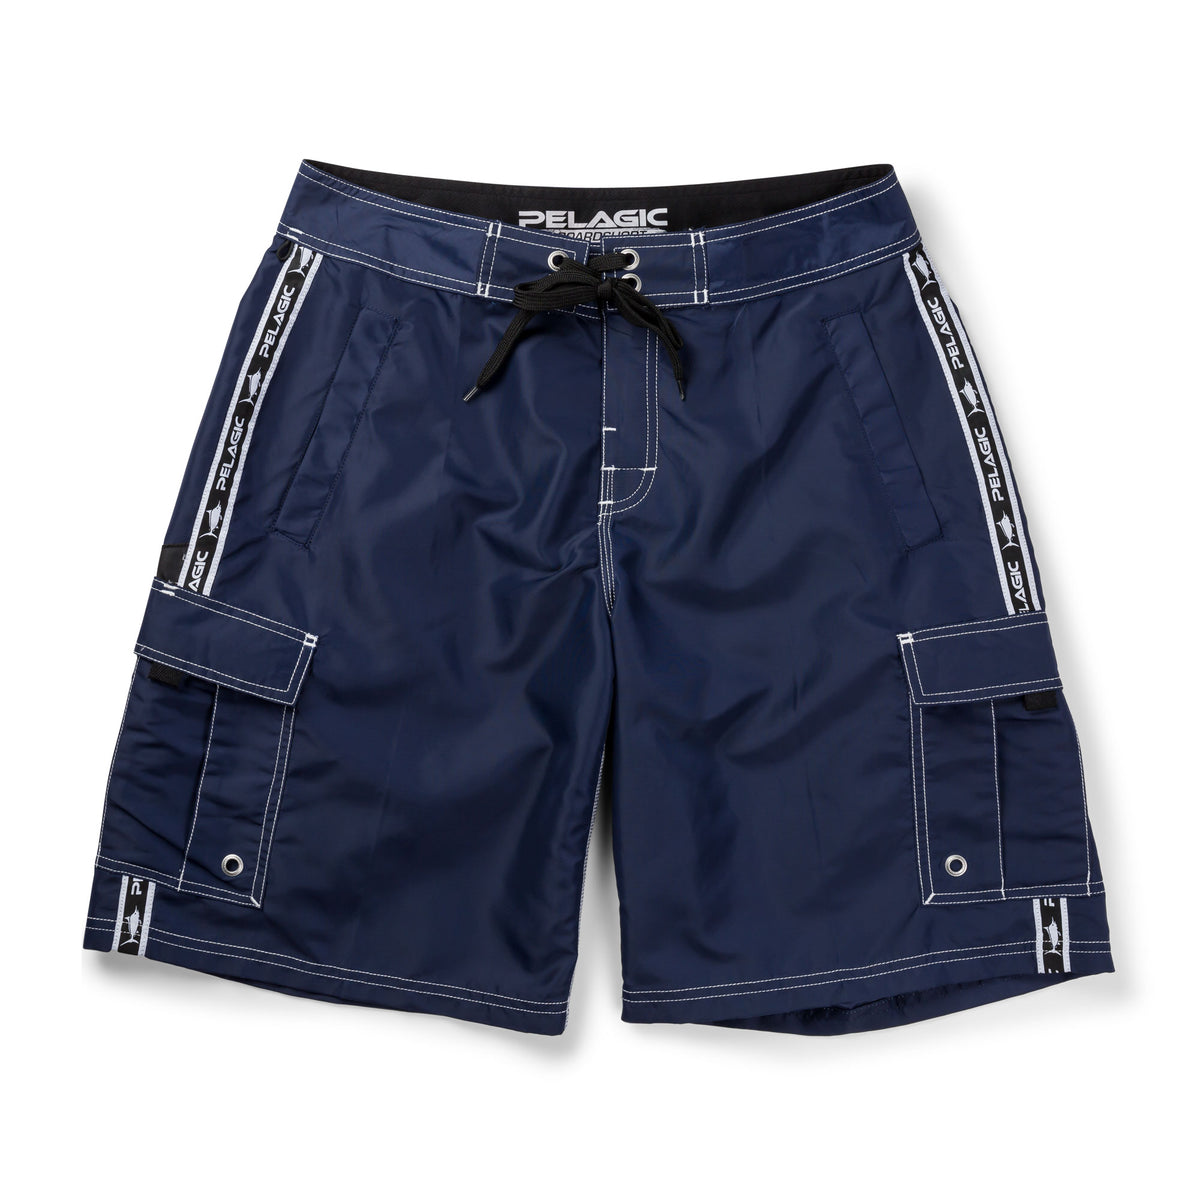 Blackfin Fishing Shorts Big Image - 1